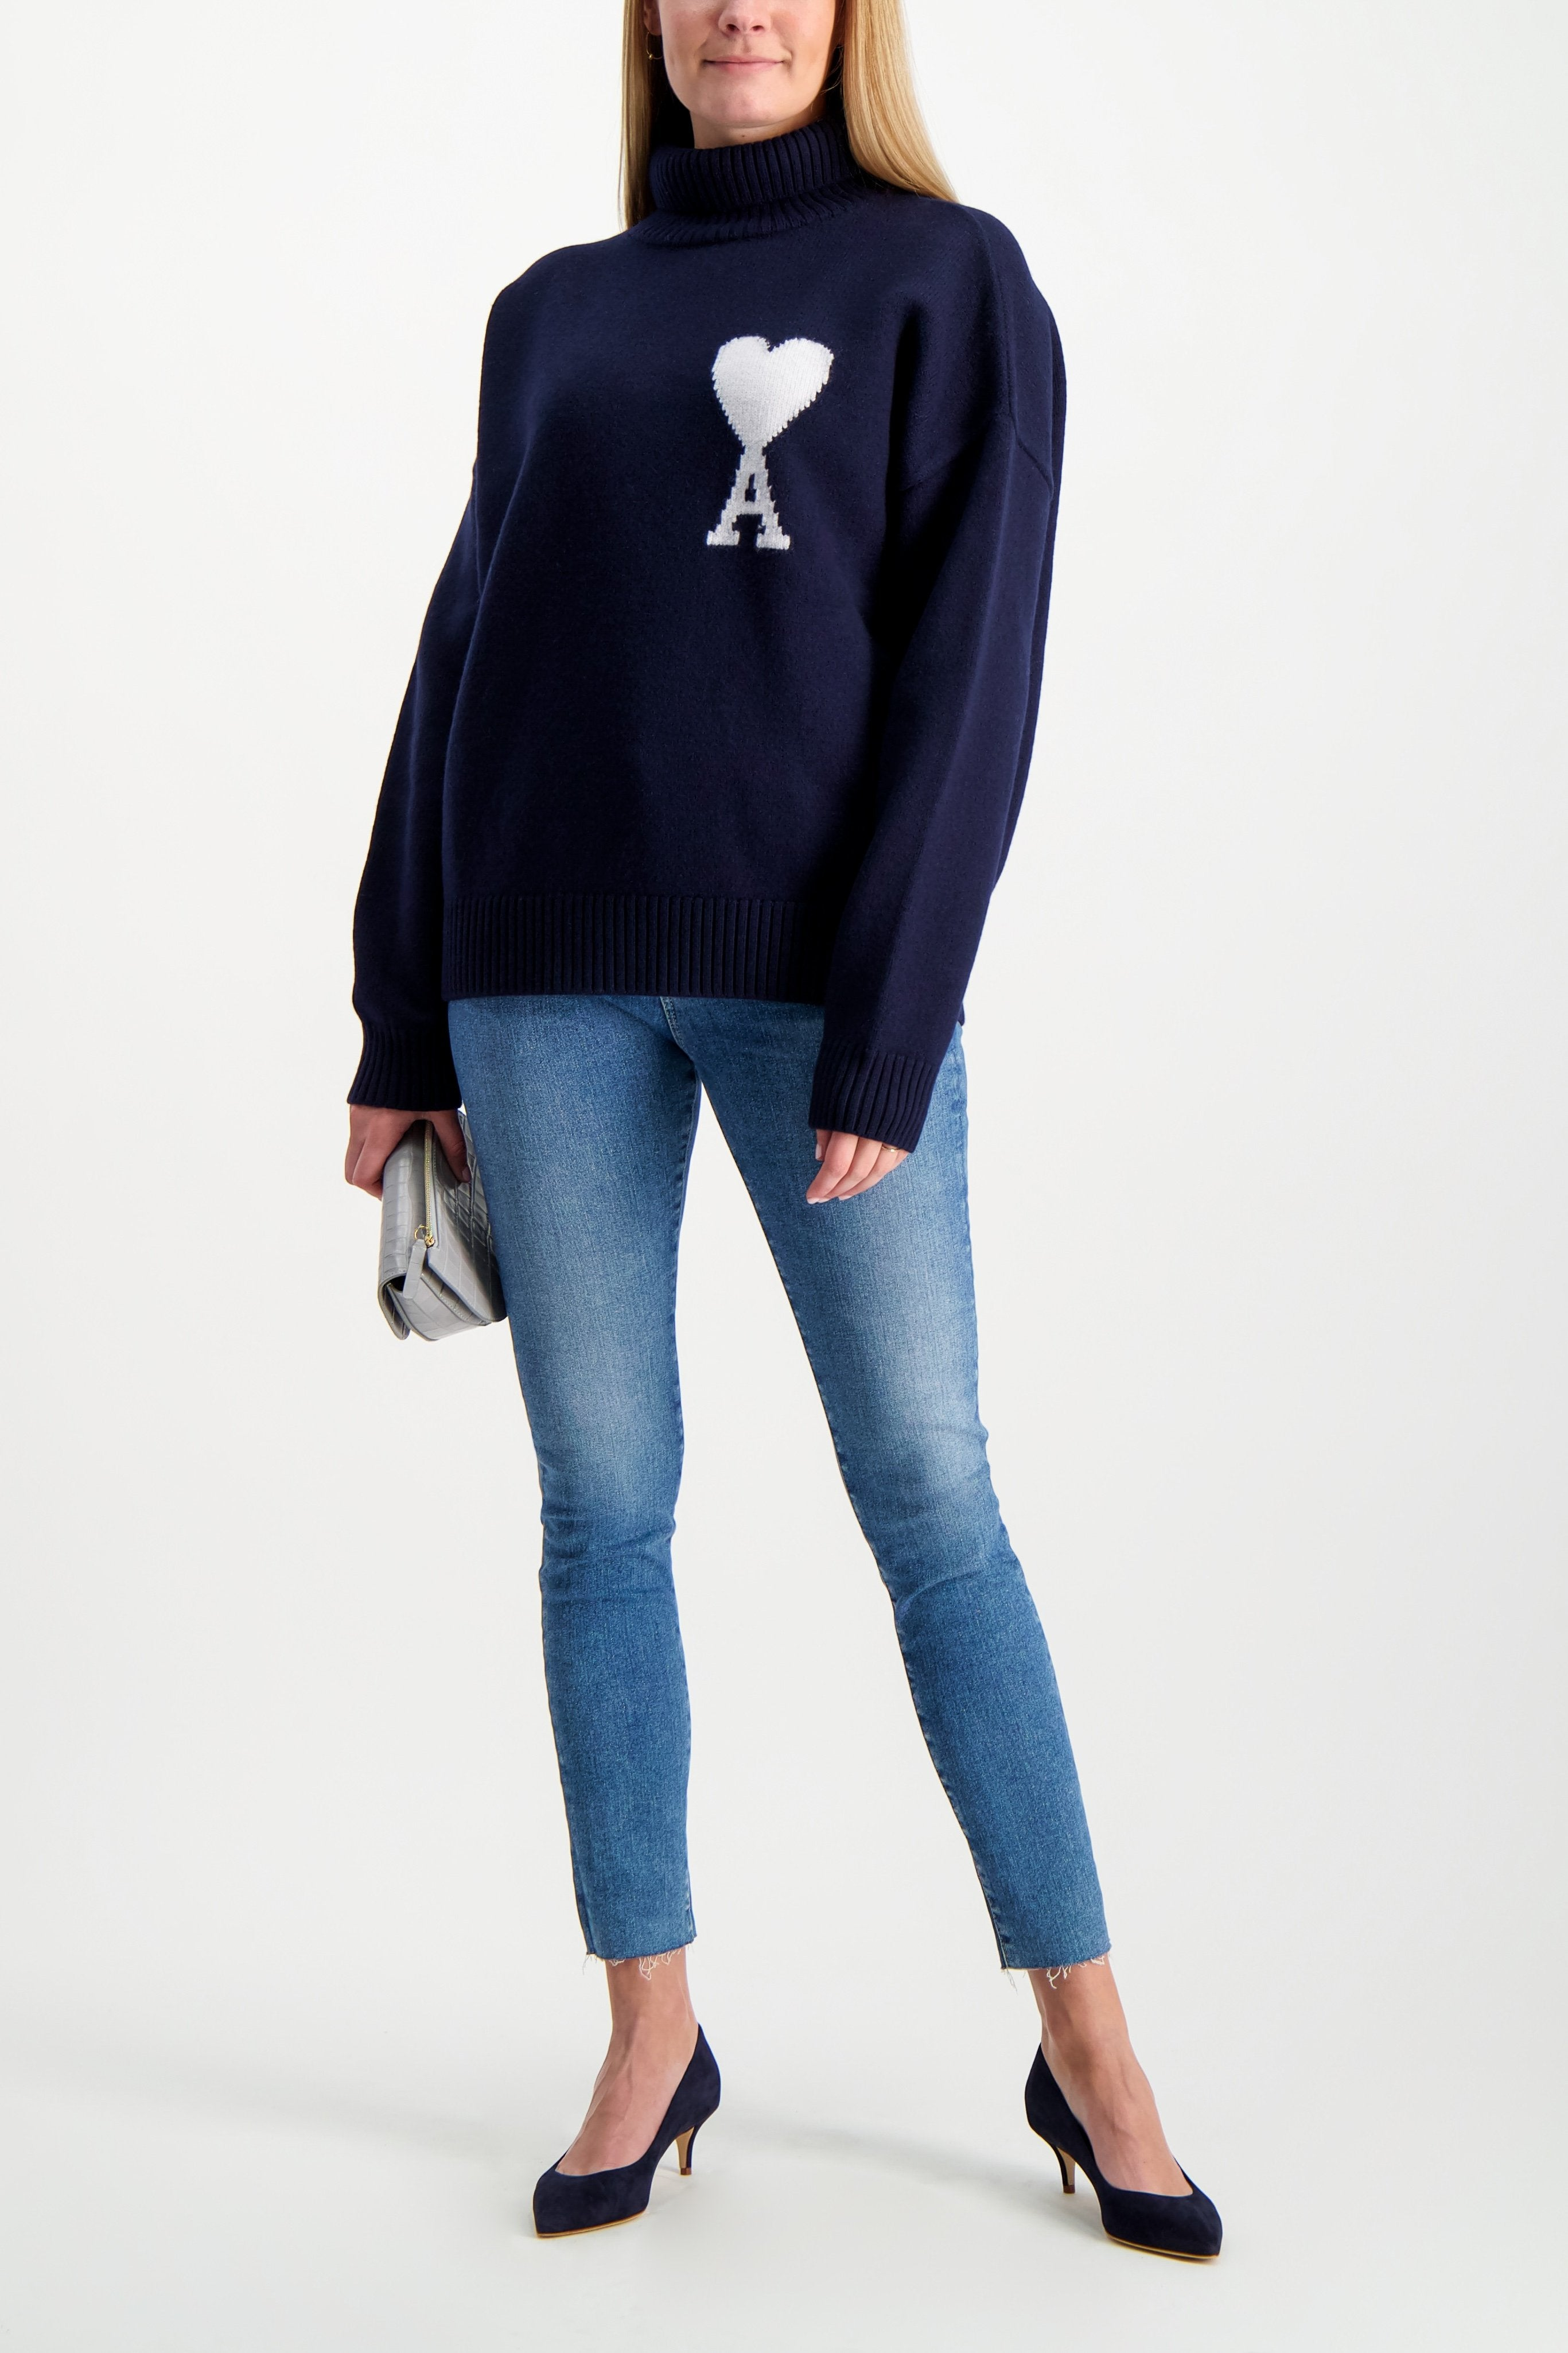 Full Body Image Of Model Wearing Women's Oversized Ami Pullover